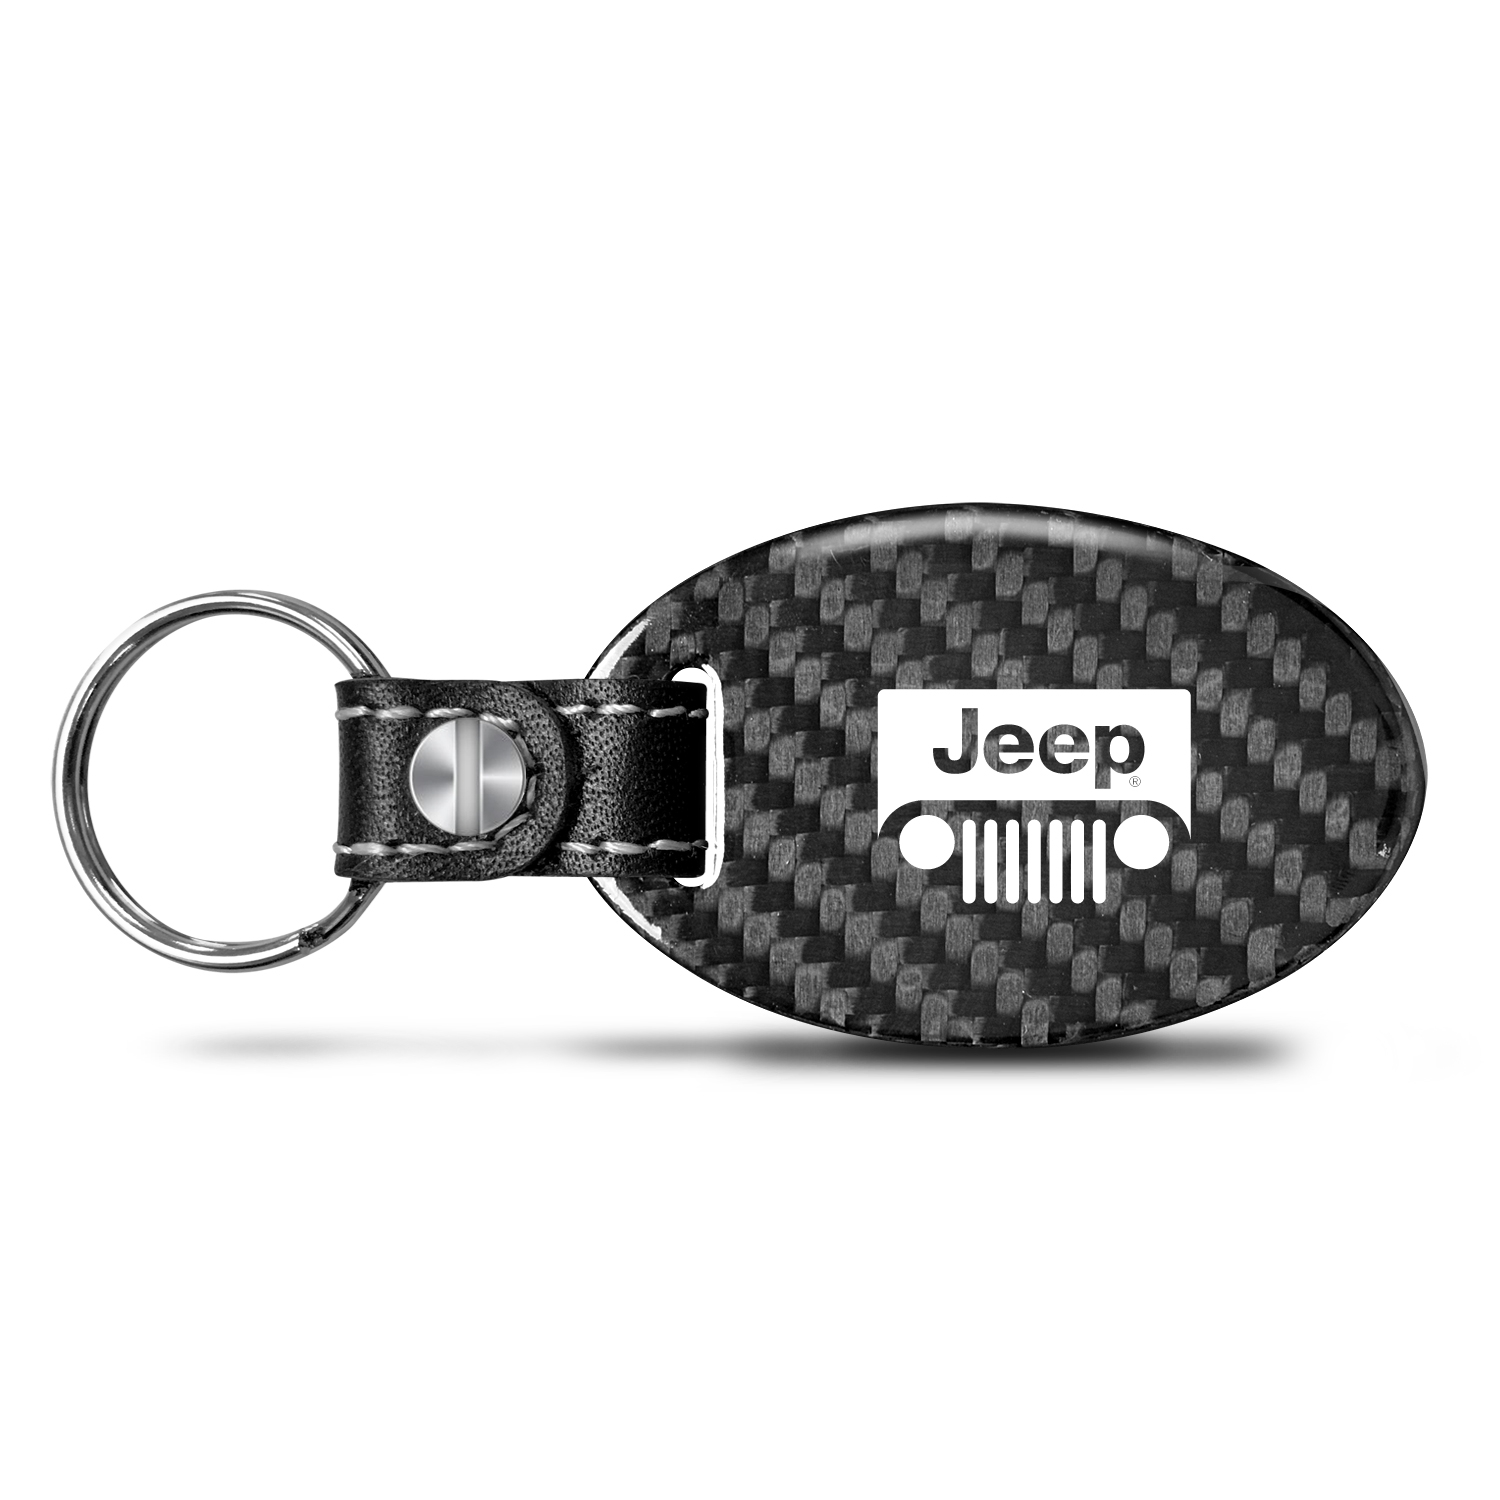 Jeep Grill Real Carbon Fiber Large Oval Shape with Black Leather Strap Key Chain